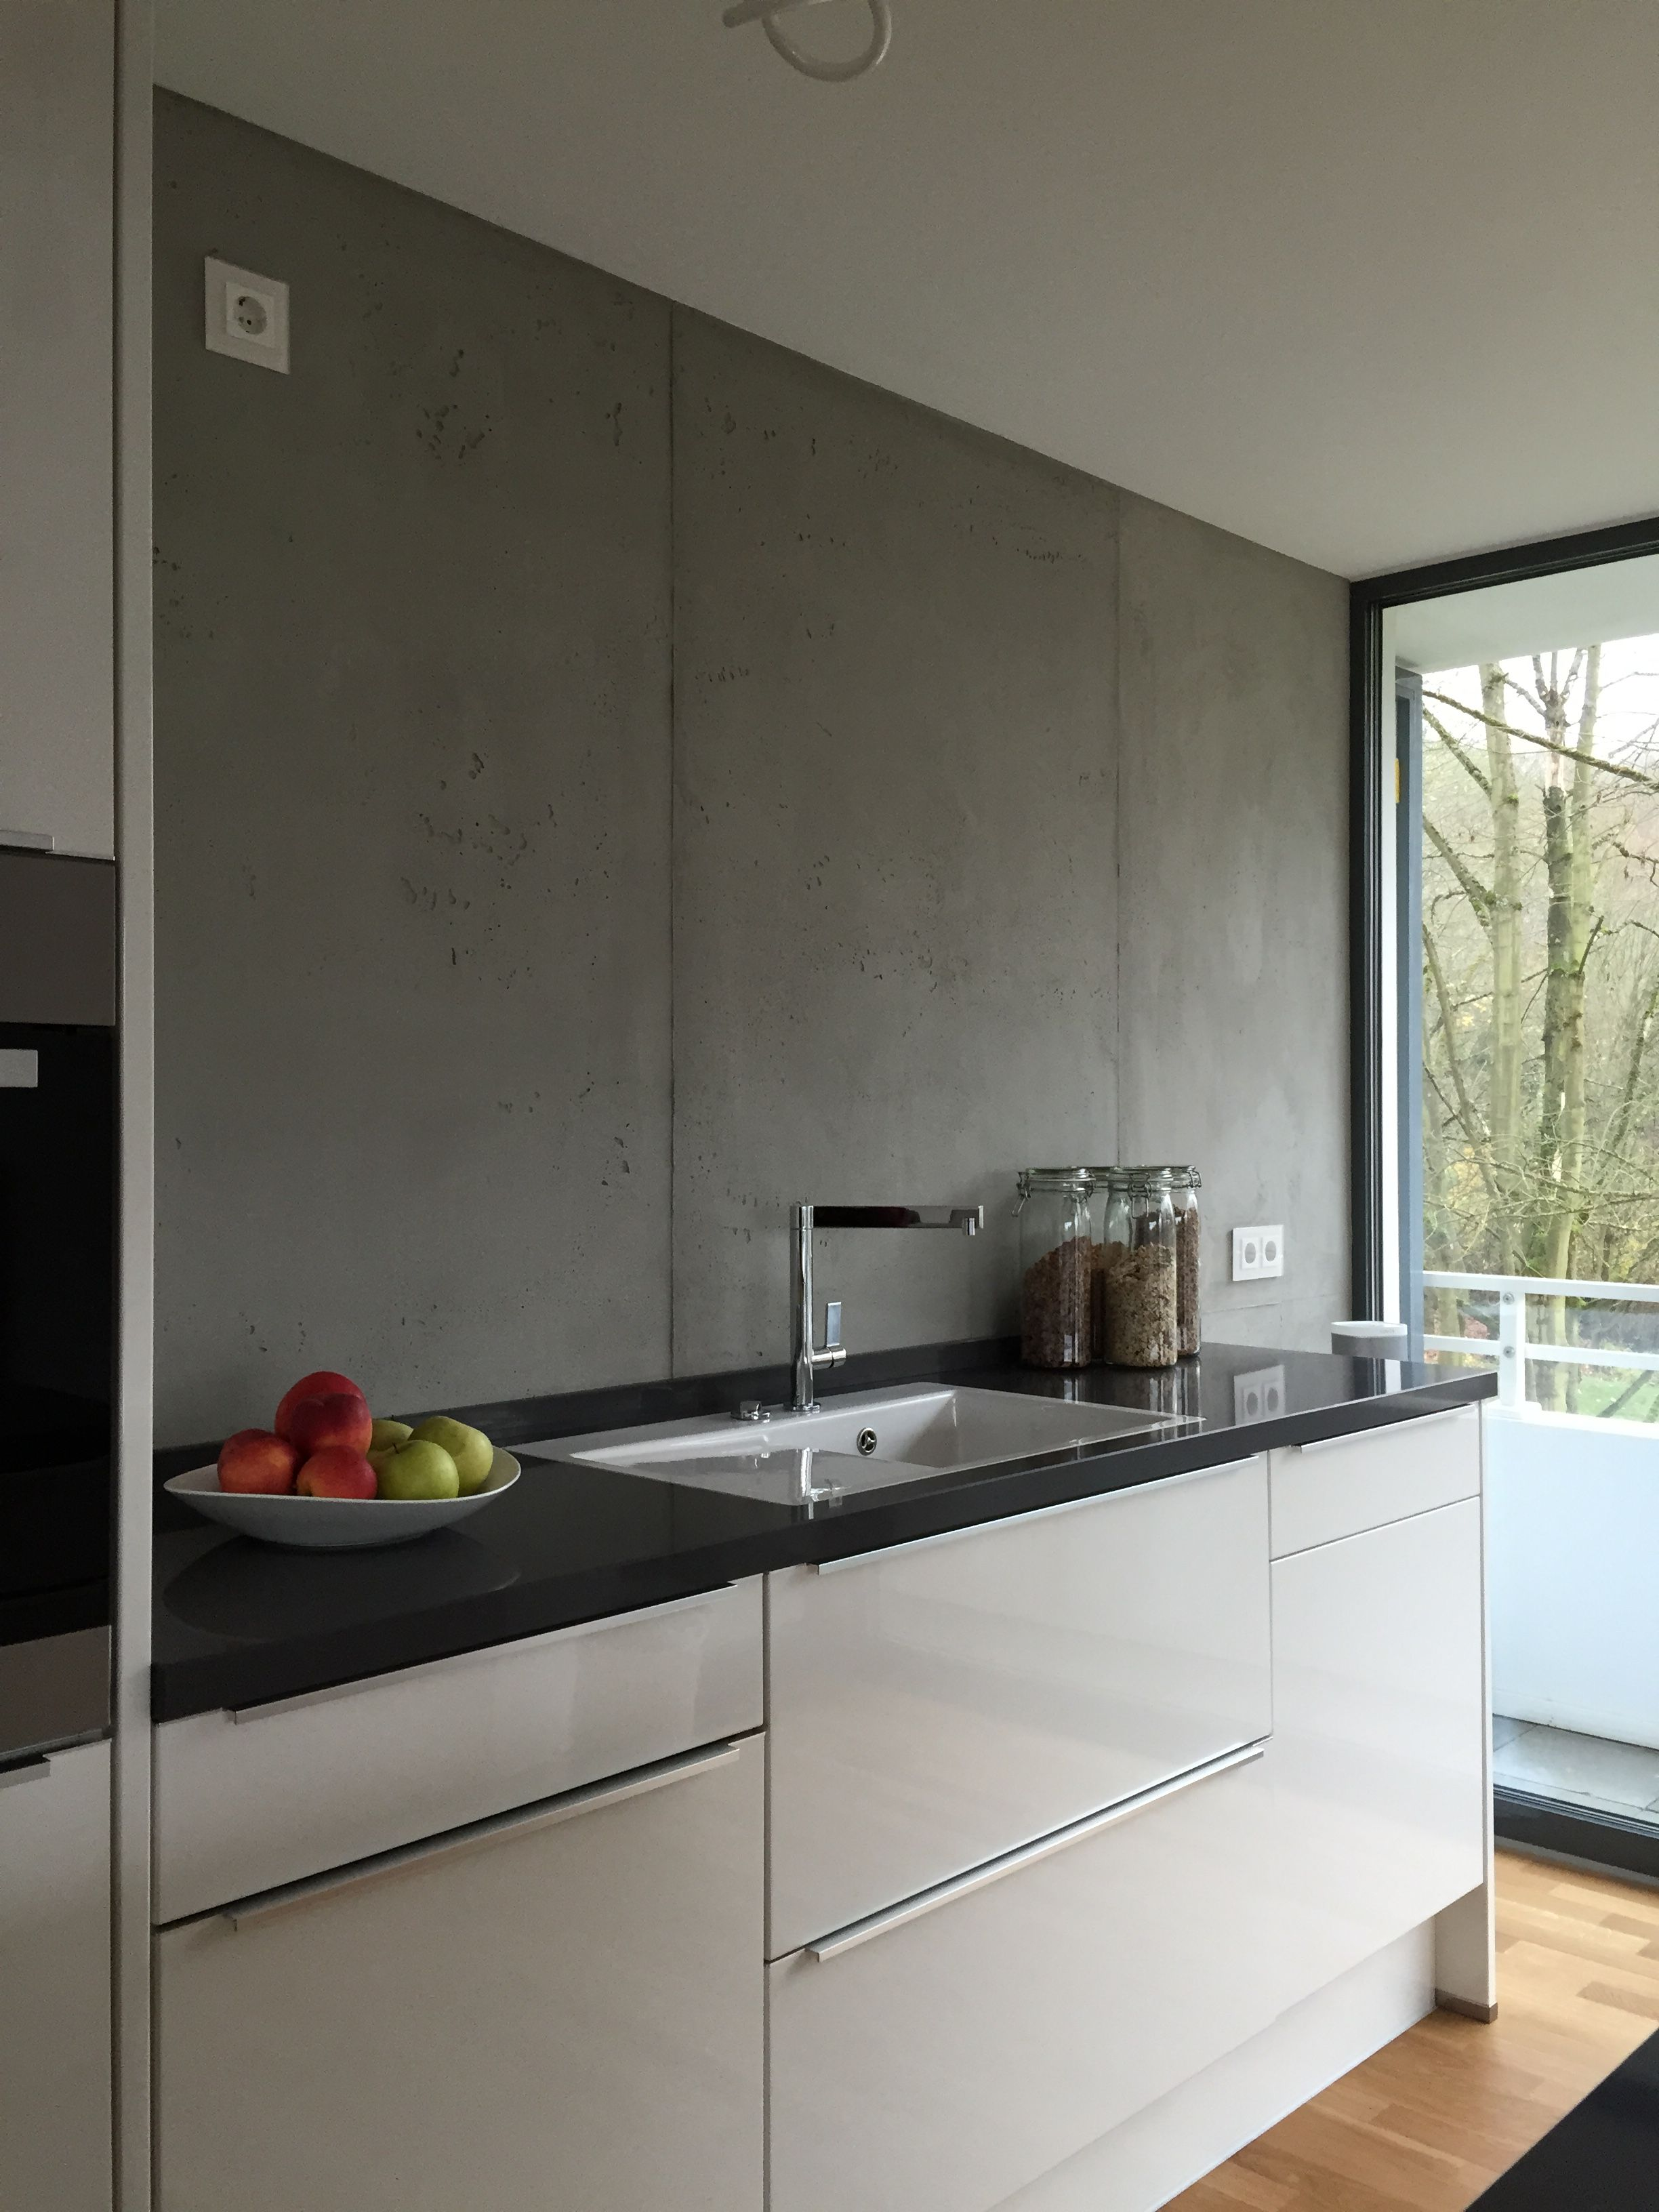 Küche Wandfarbe Betonlook In Der Küche Kitchen Ideas Concrete Kitchen Kitchen